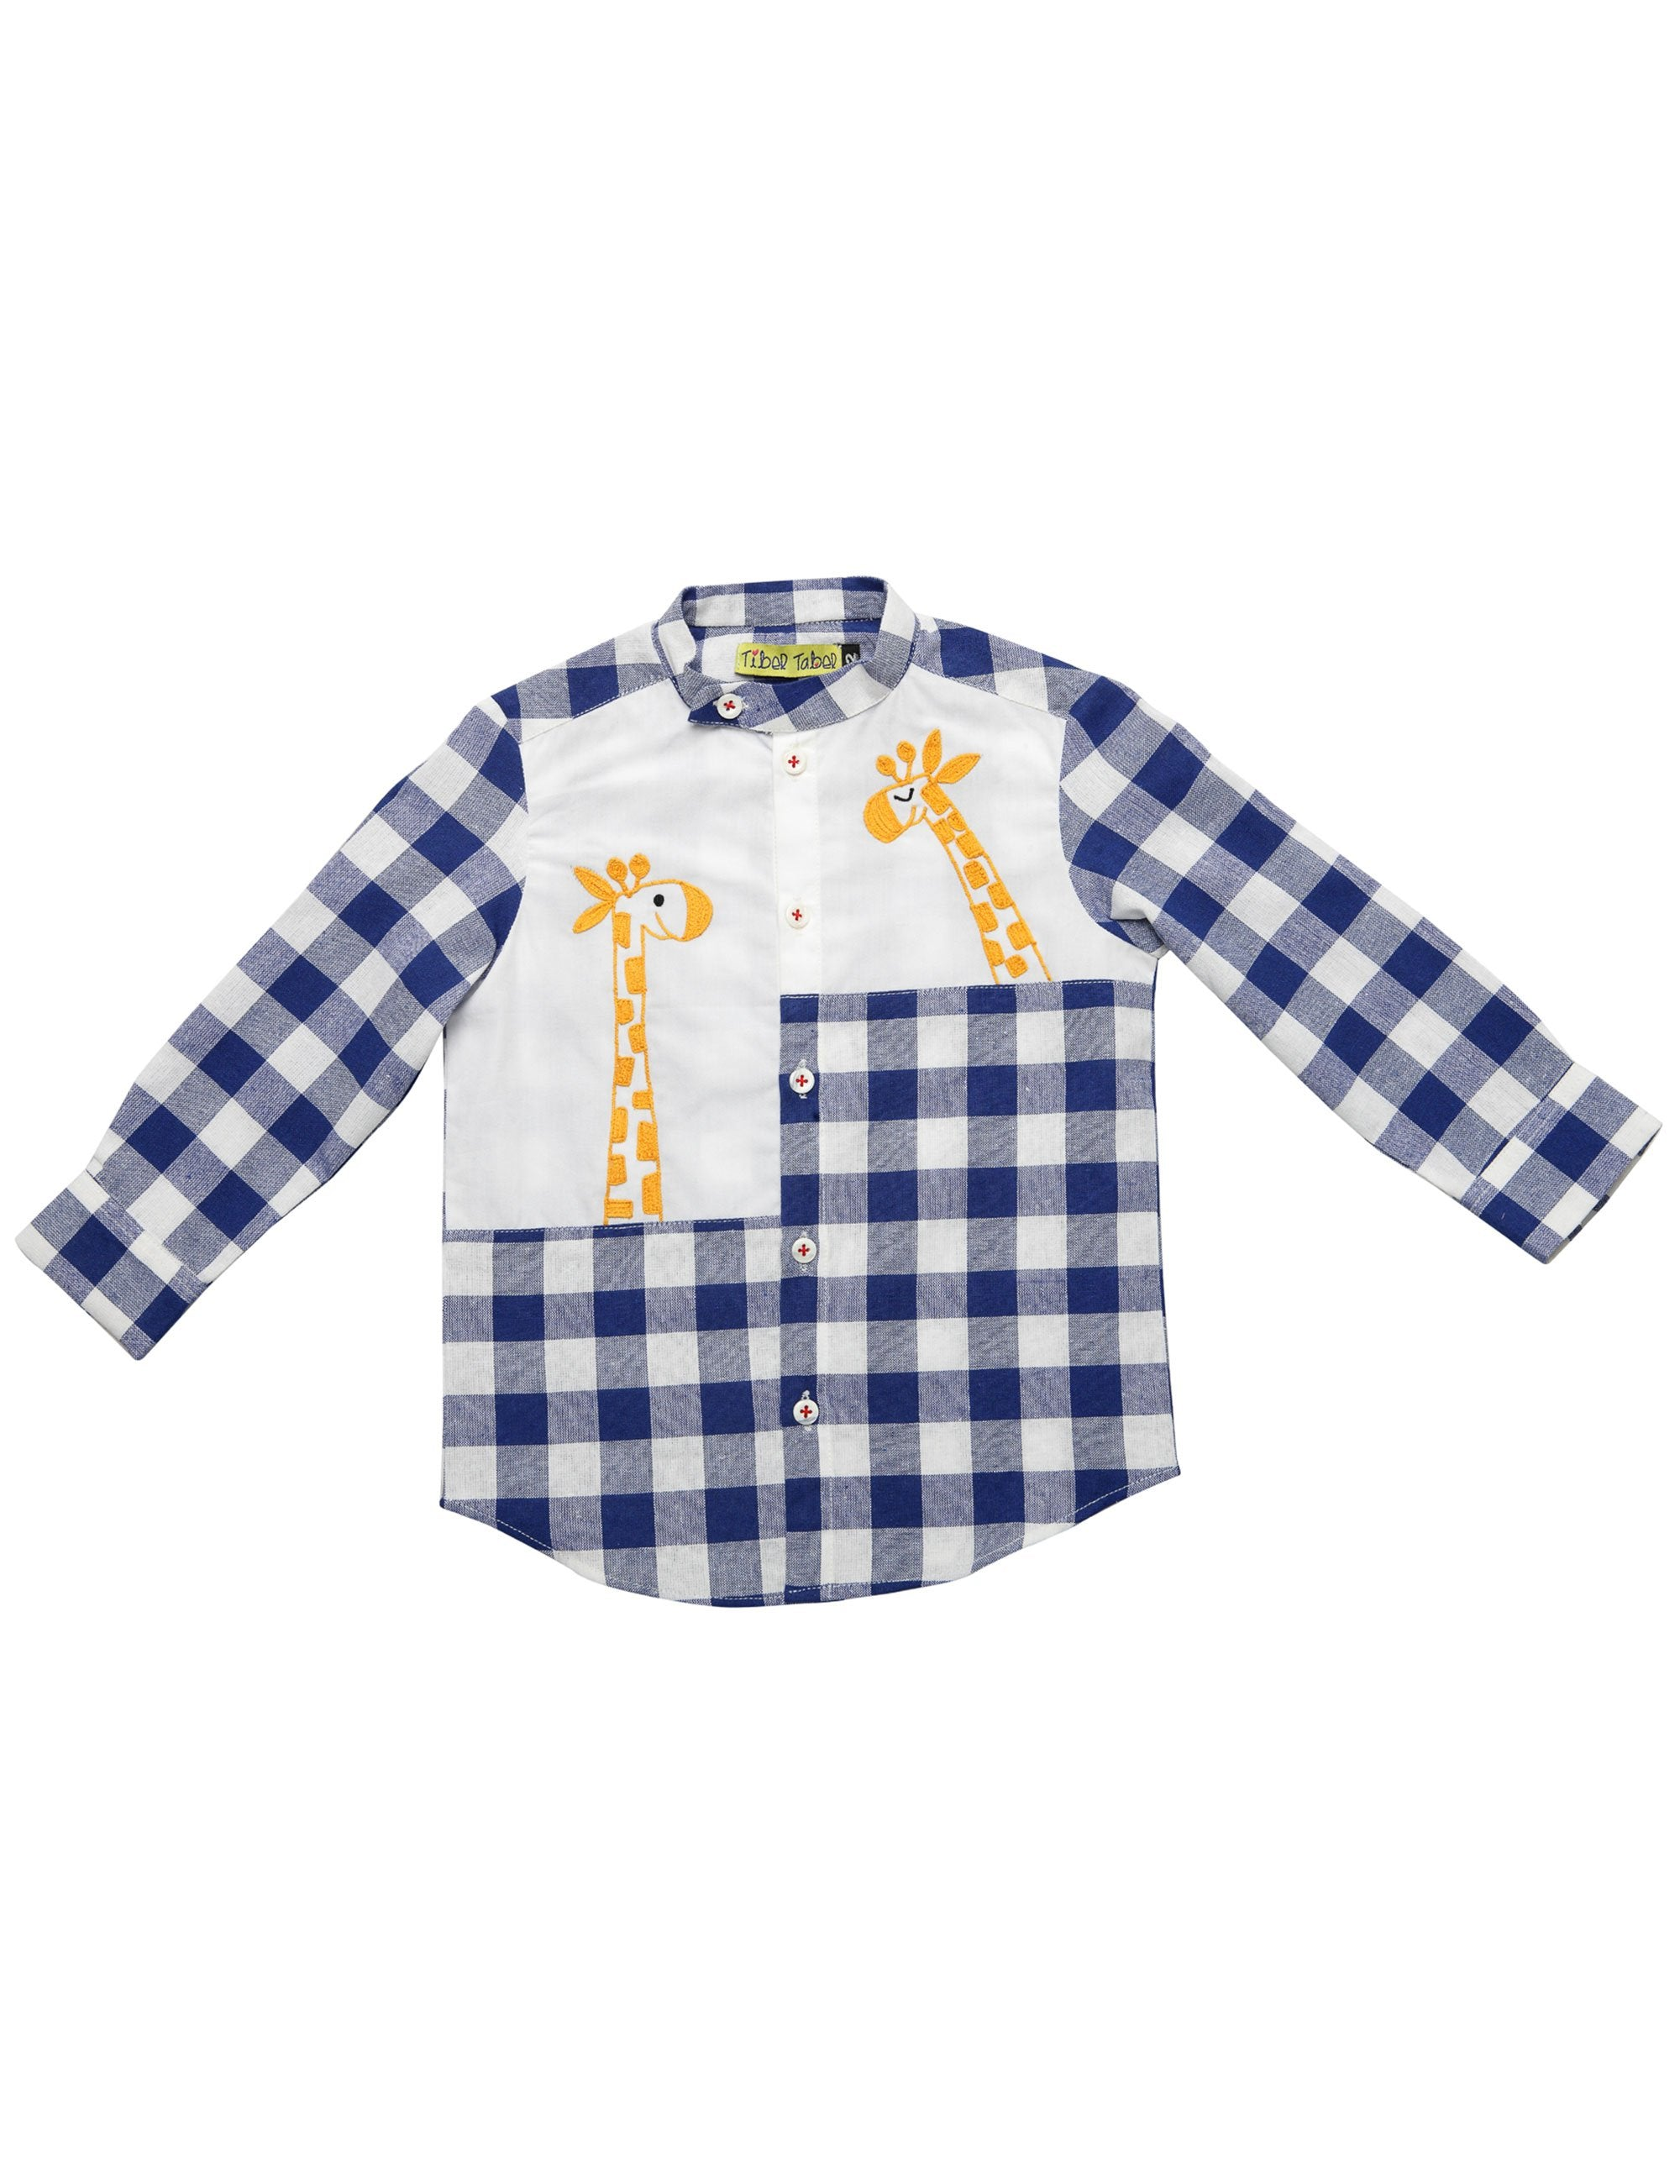 Checks Shirt in Blue and White Colour for Boys